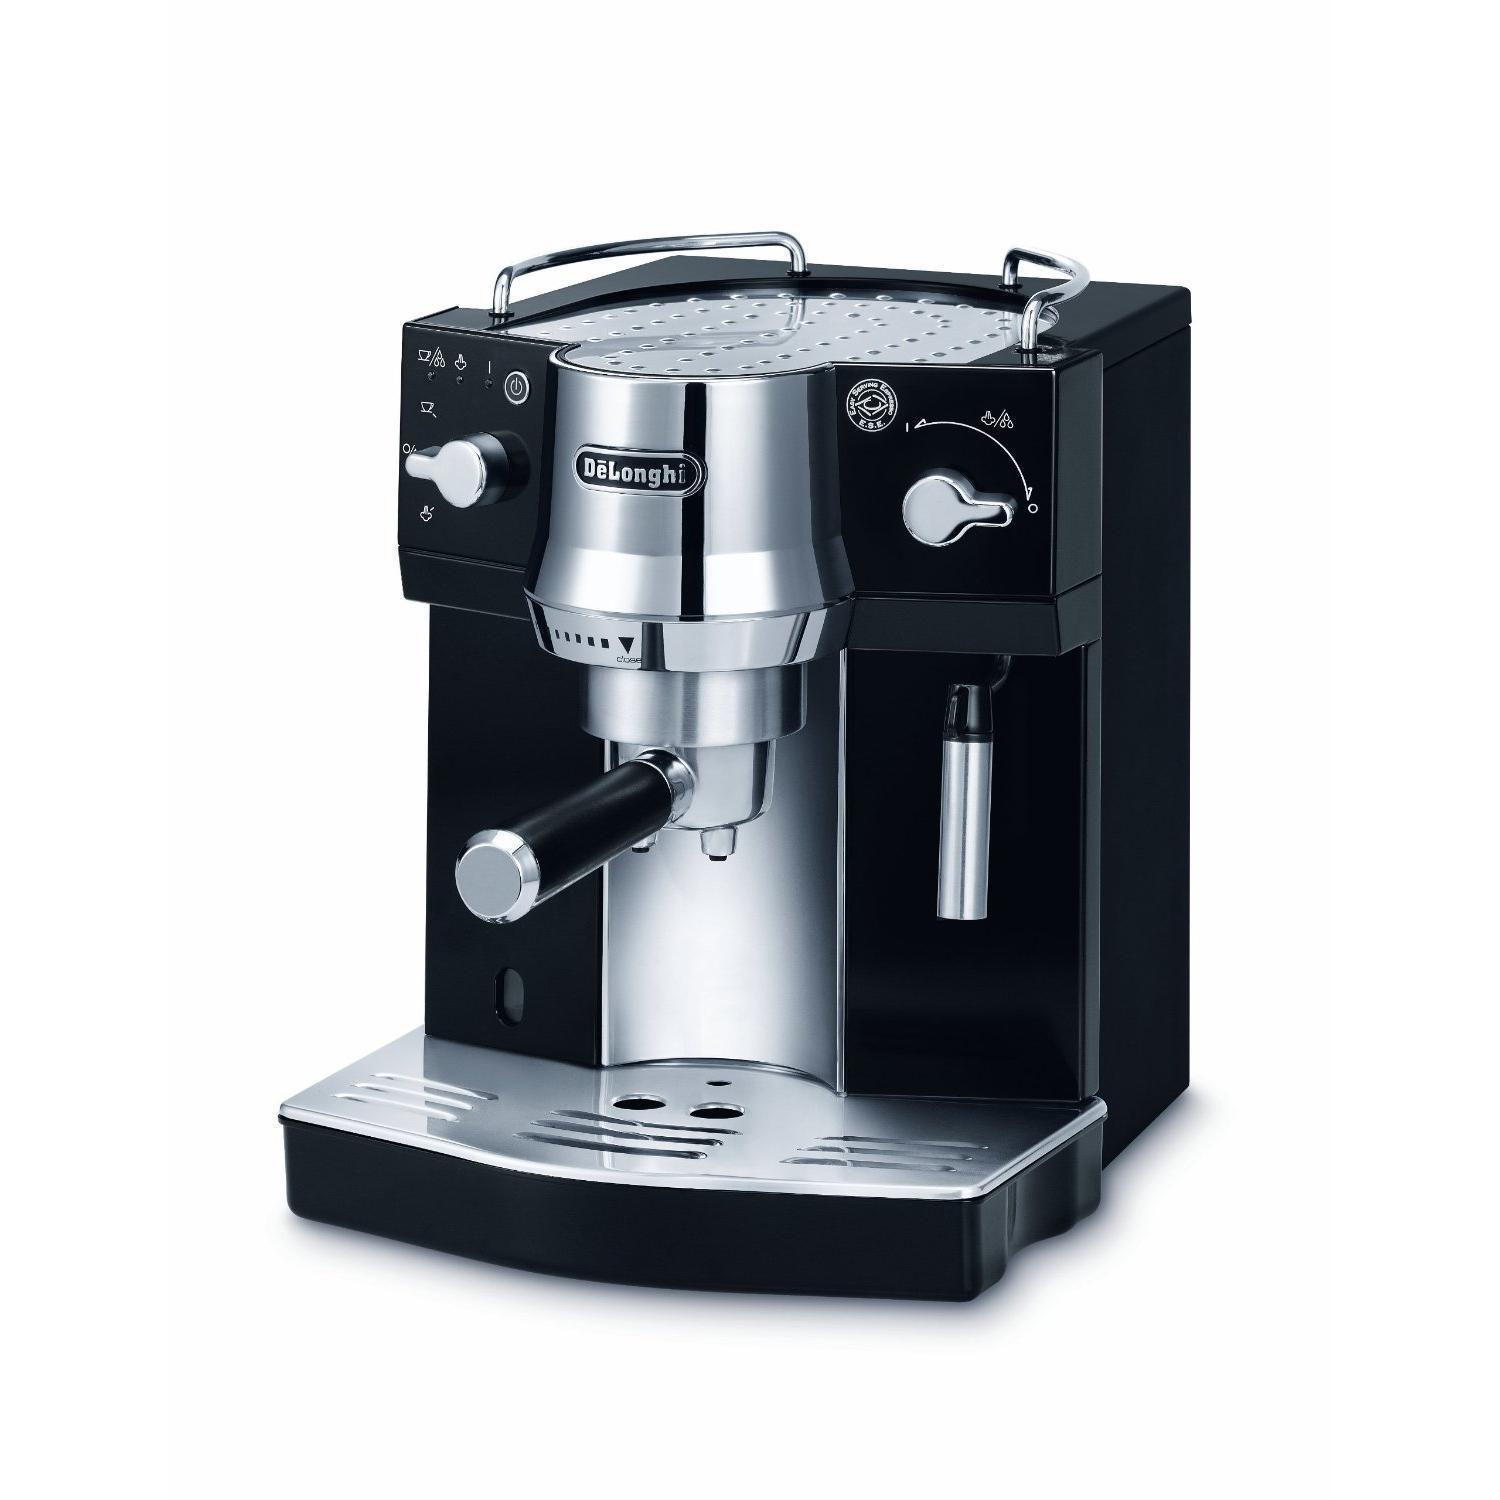 Machine à expresso Delonghi EC820B